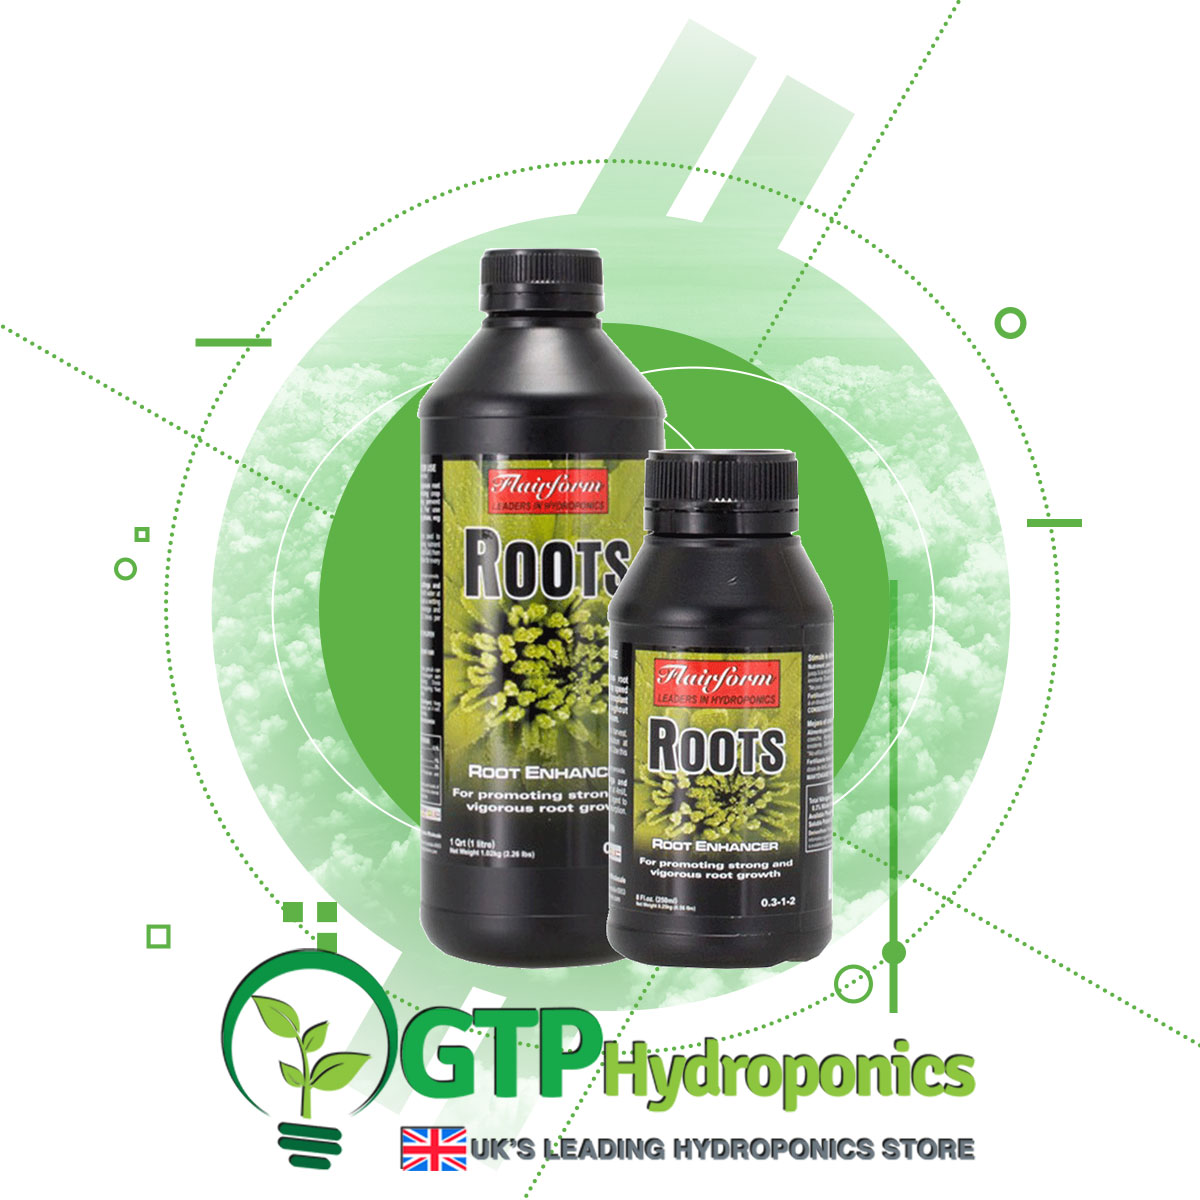 Flairform Roots product